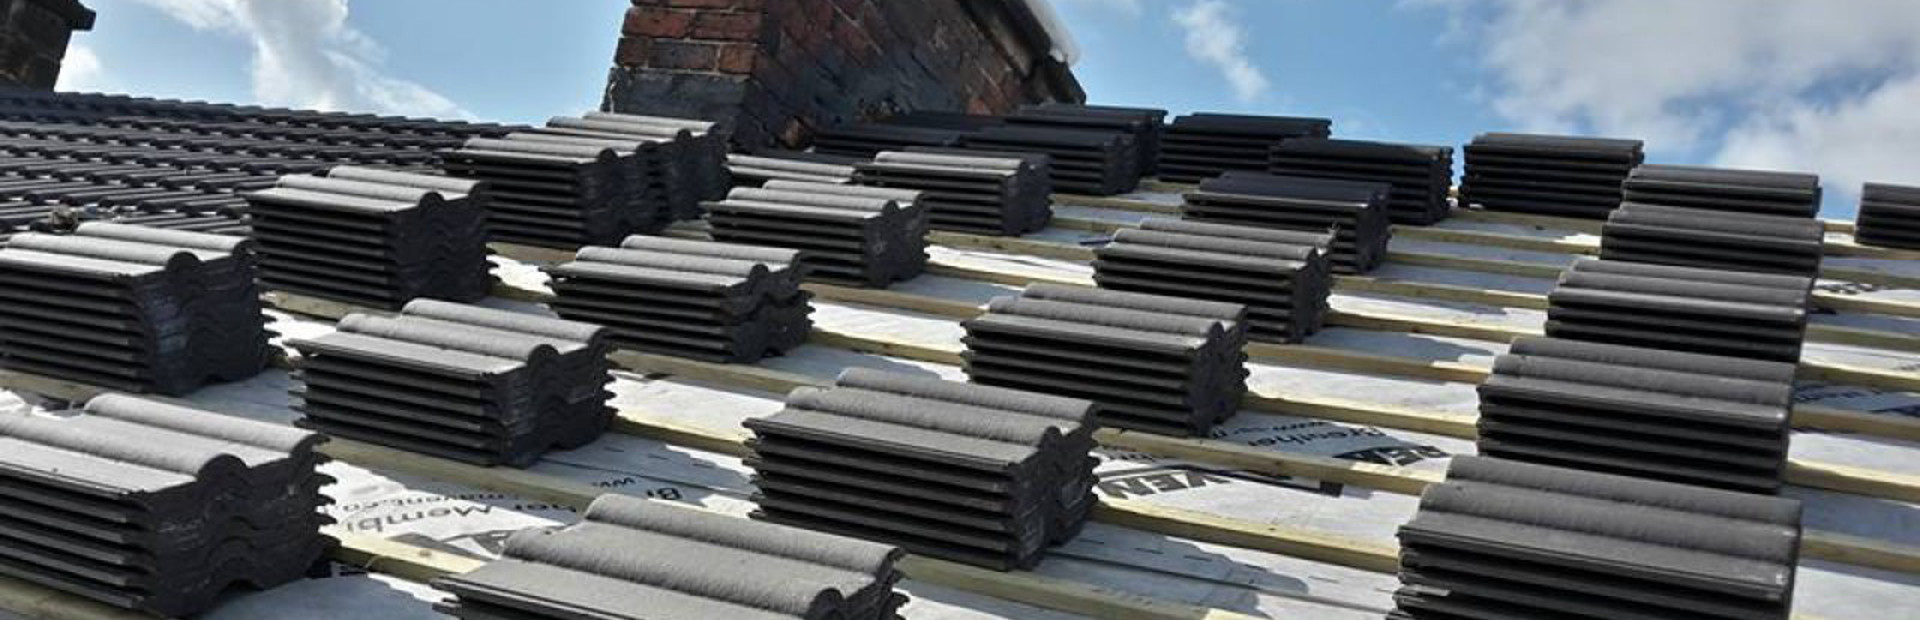 Roof Repairs Alverthorpe Wakefield